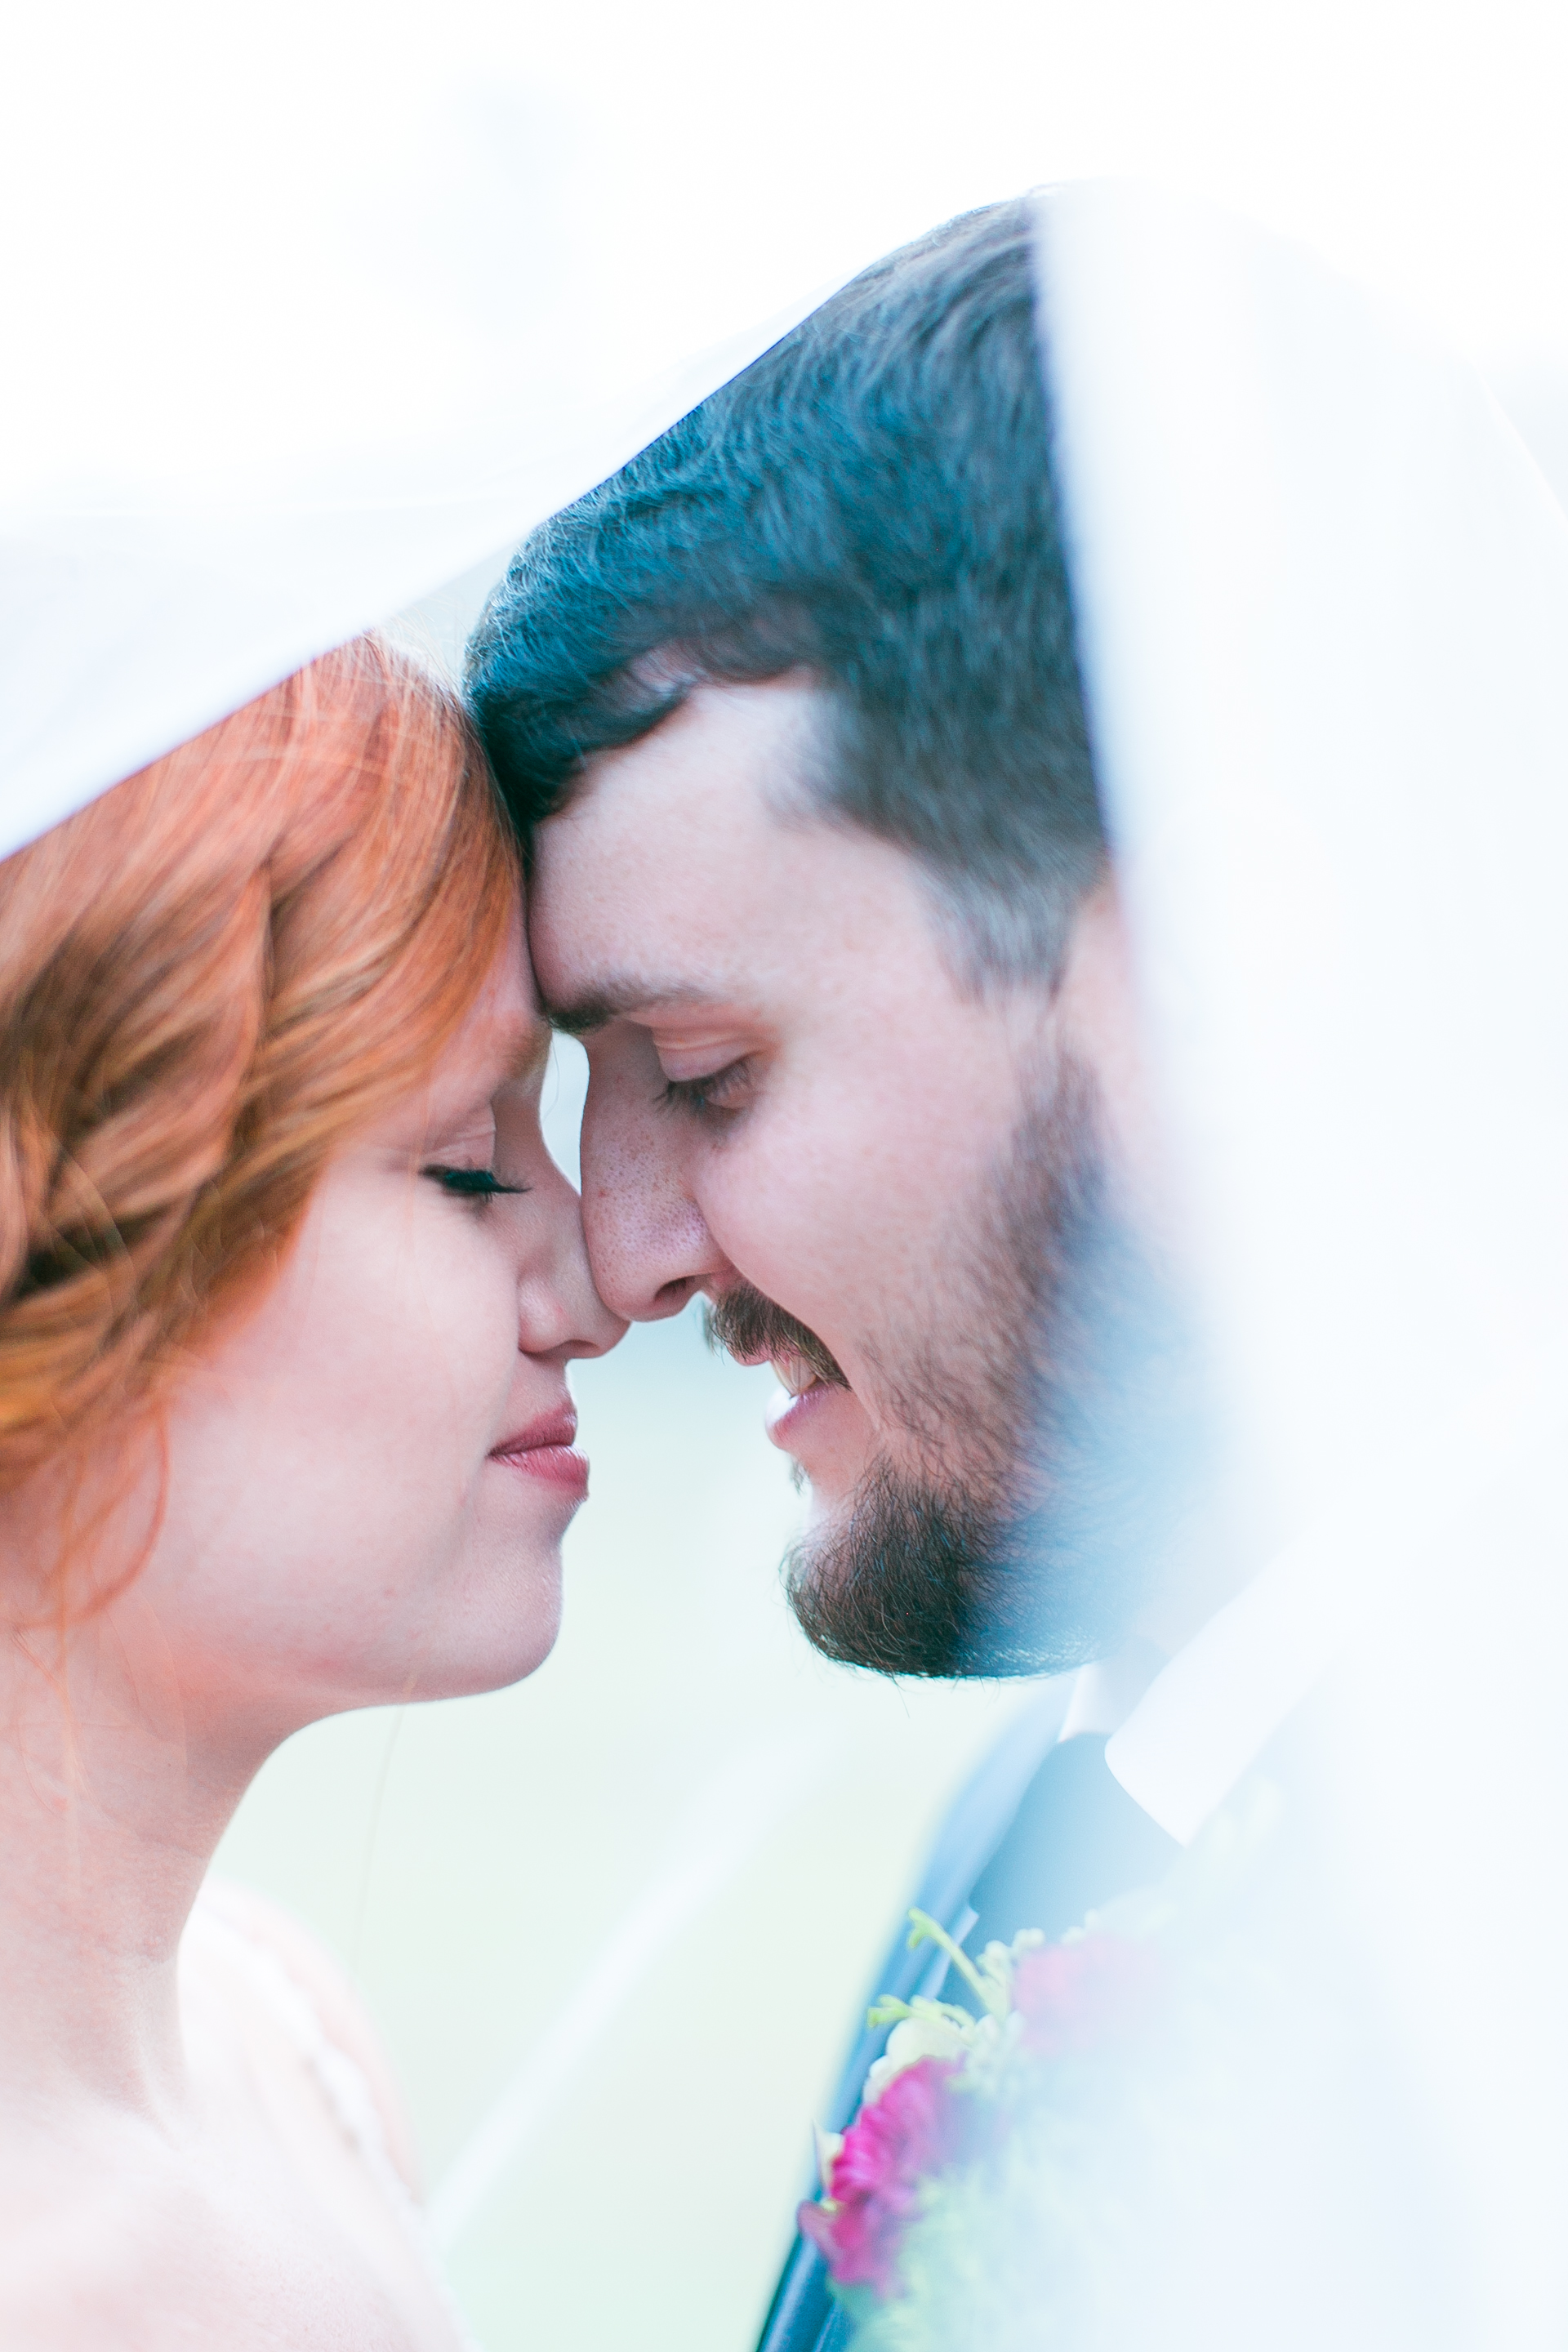 brockwedding_sneakpeek31.jpg